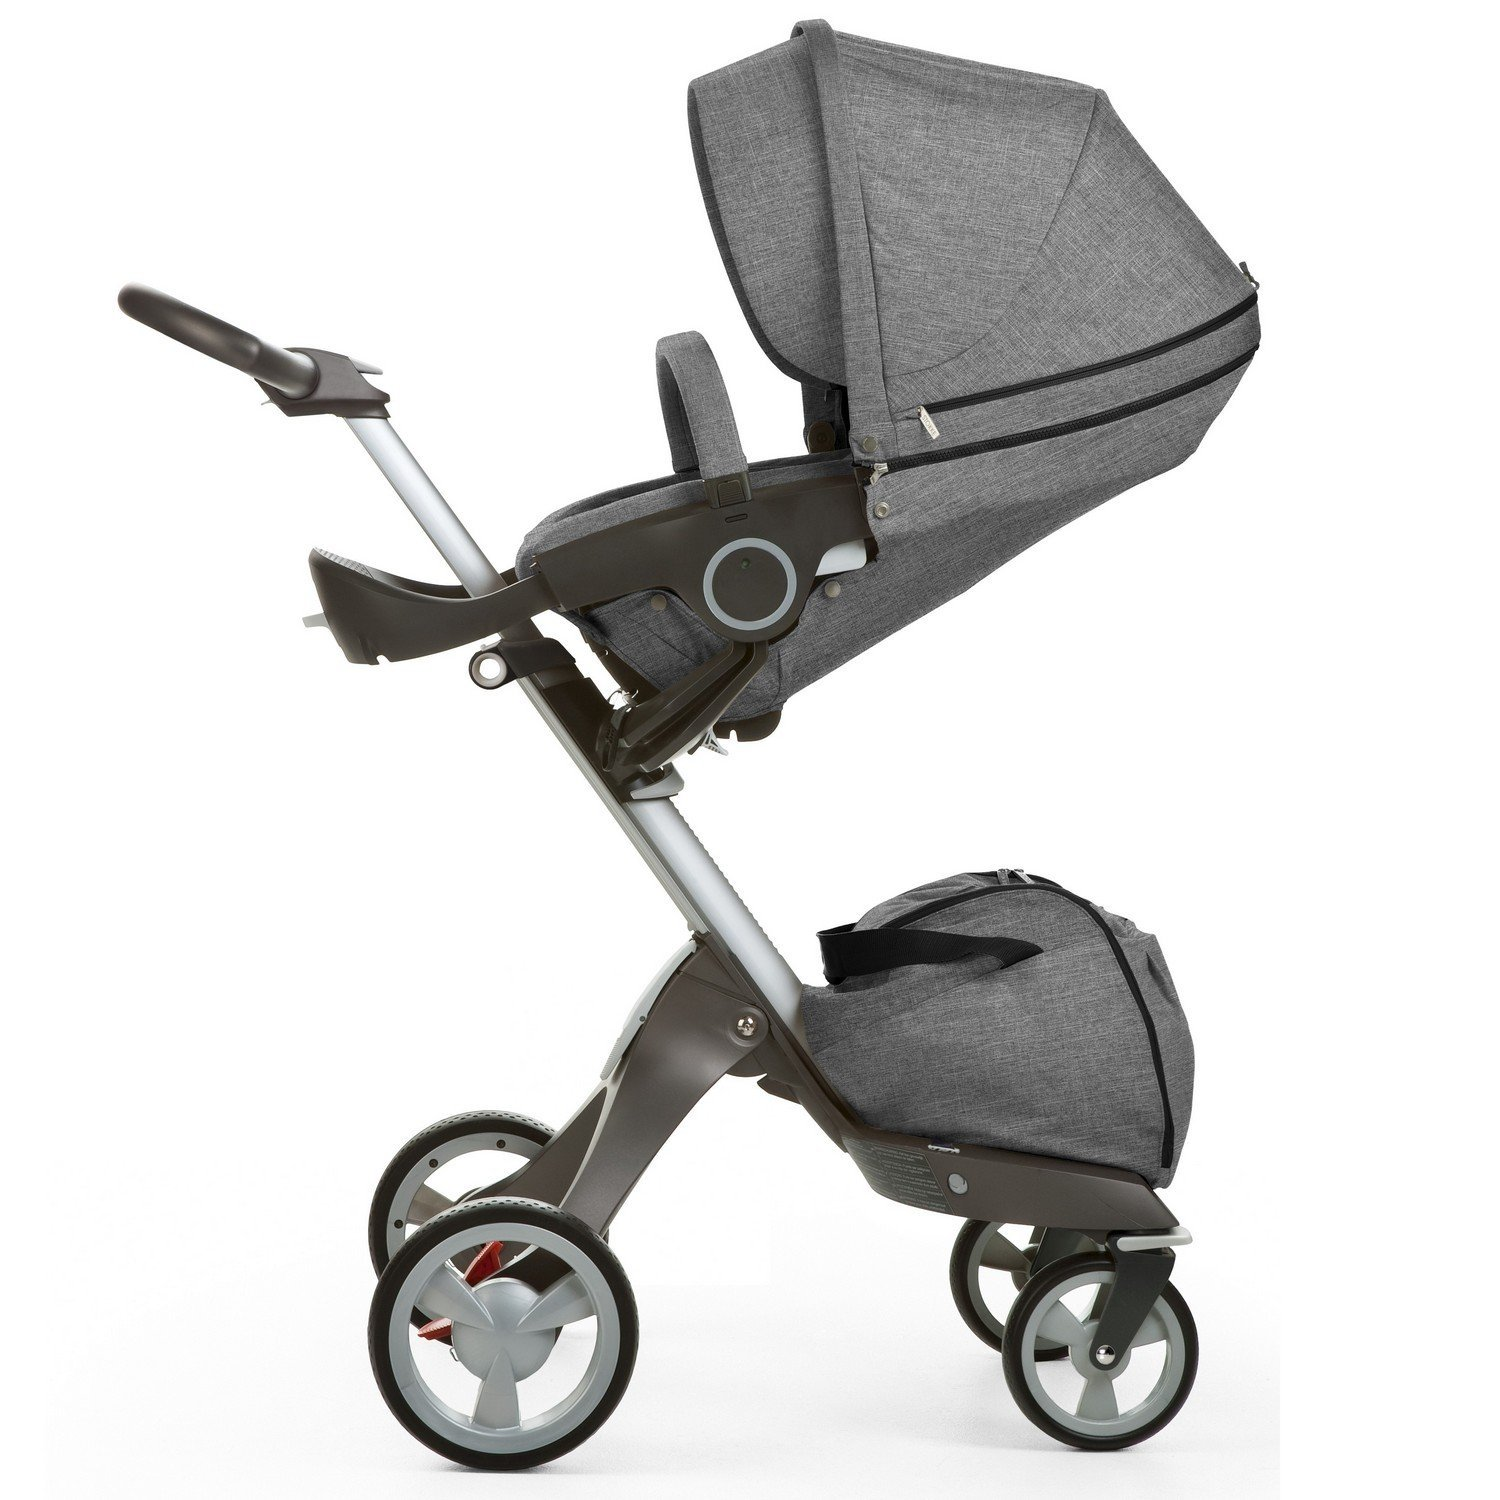 Stokke Stroller Store My Epic Guide To The Stokke Xplory Stroller